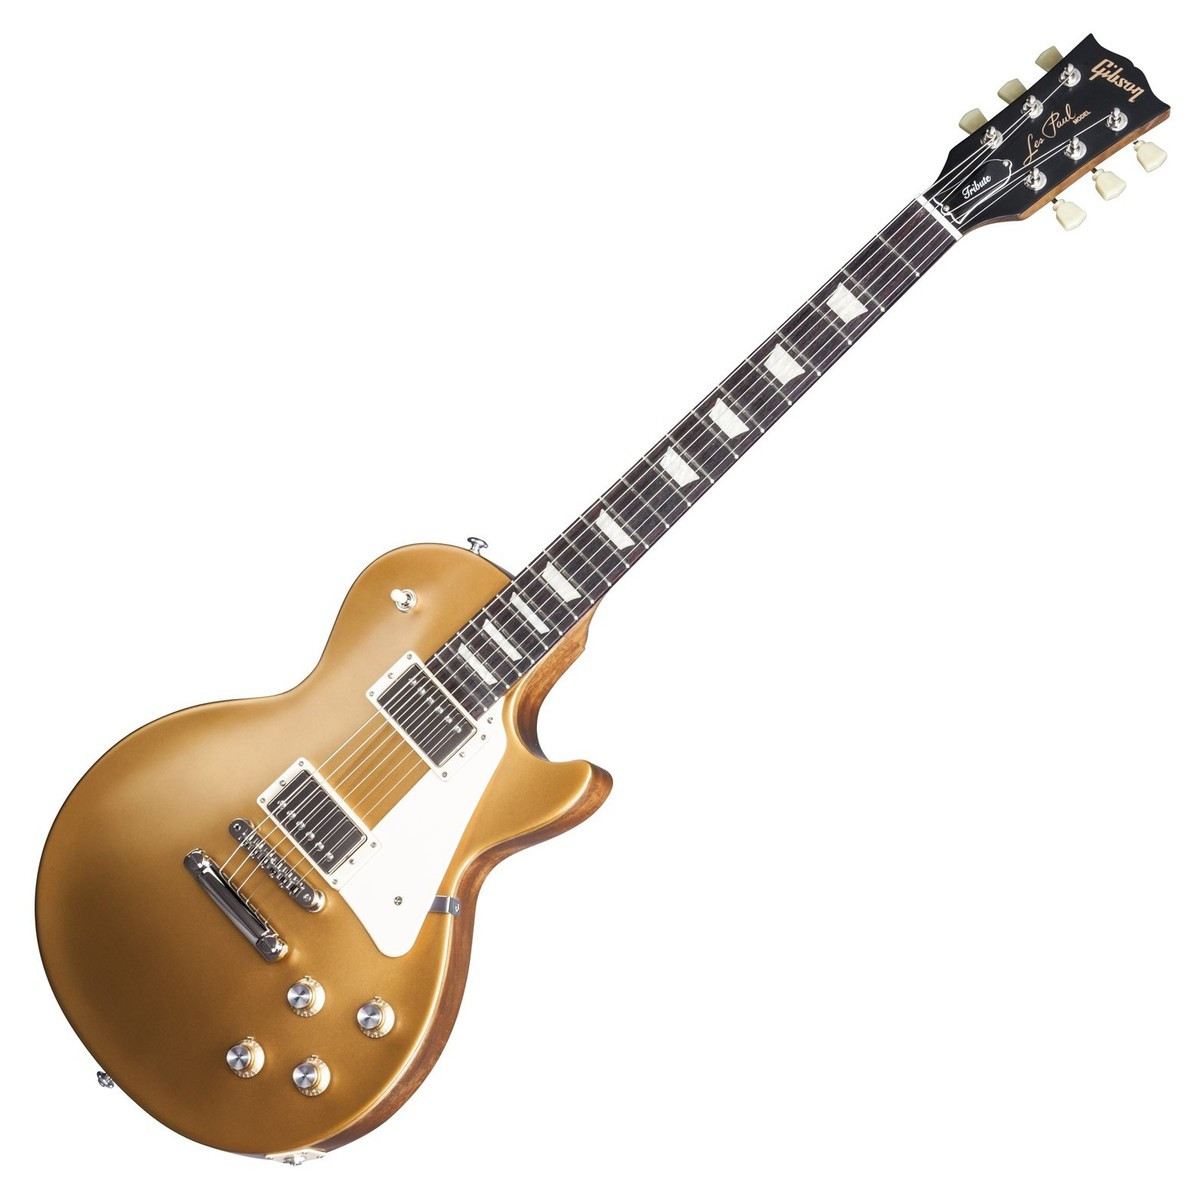 Gibson Les Paul Gold top Innovador Gibson Les Paul Tribute T Electric Guitar Satin Gold top Of 45  Innovador Gibson Les Paul Gold top